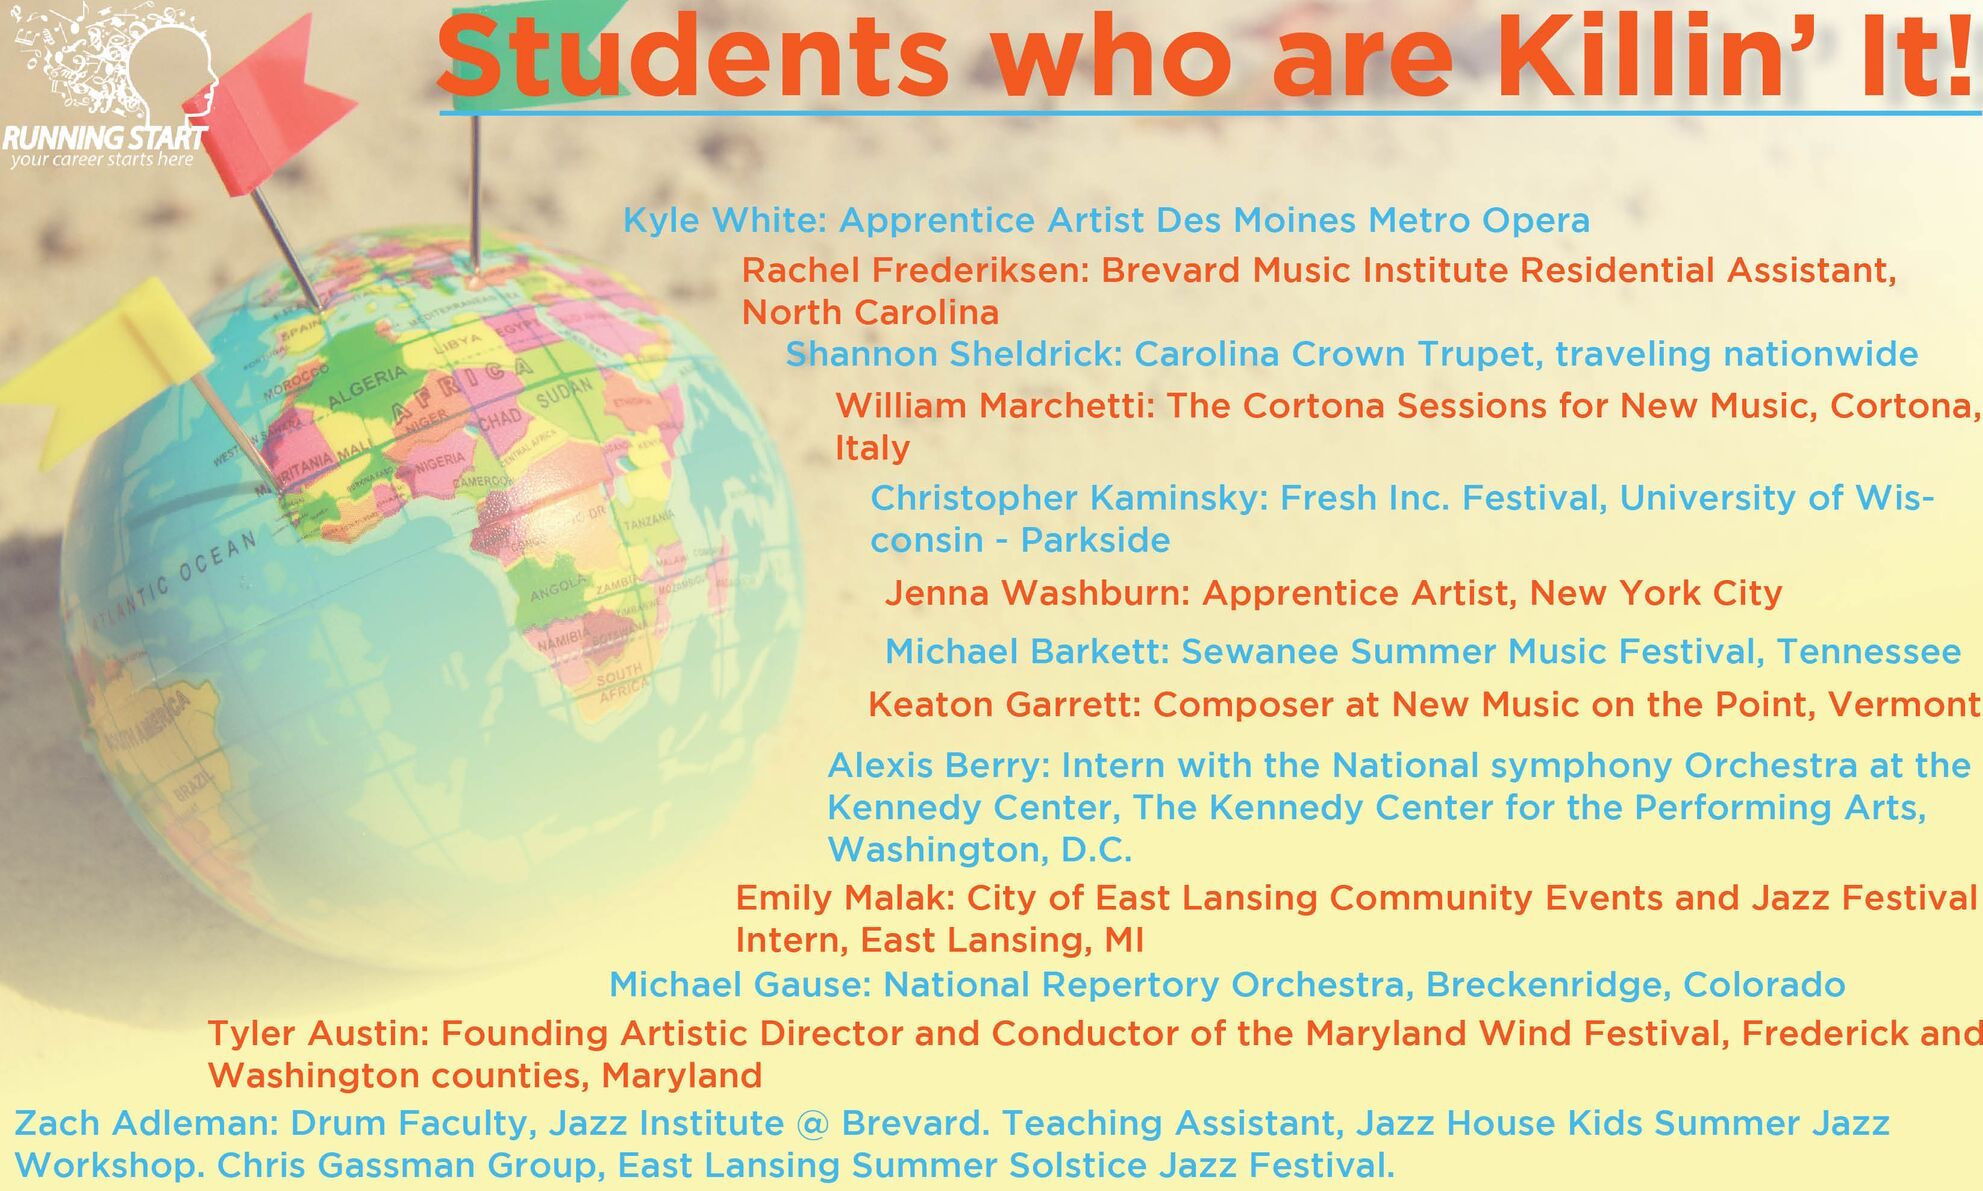 Check out what some of our students are up to this summer! image